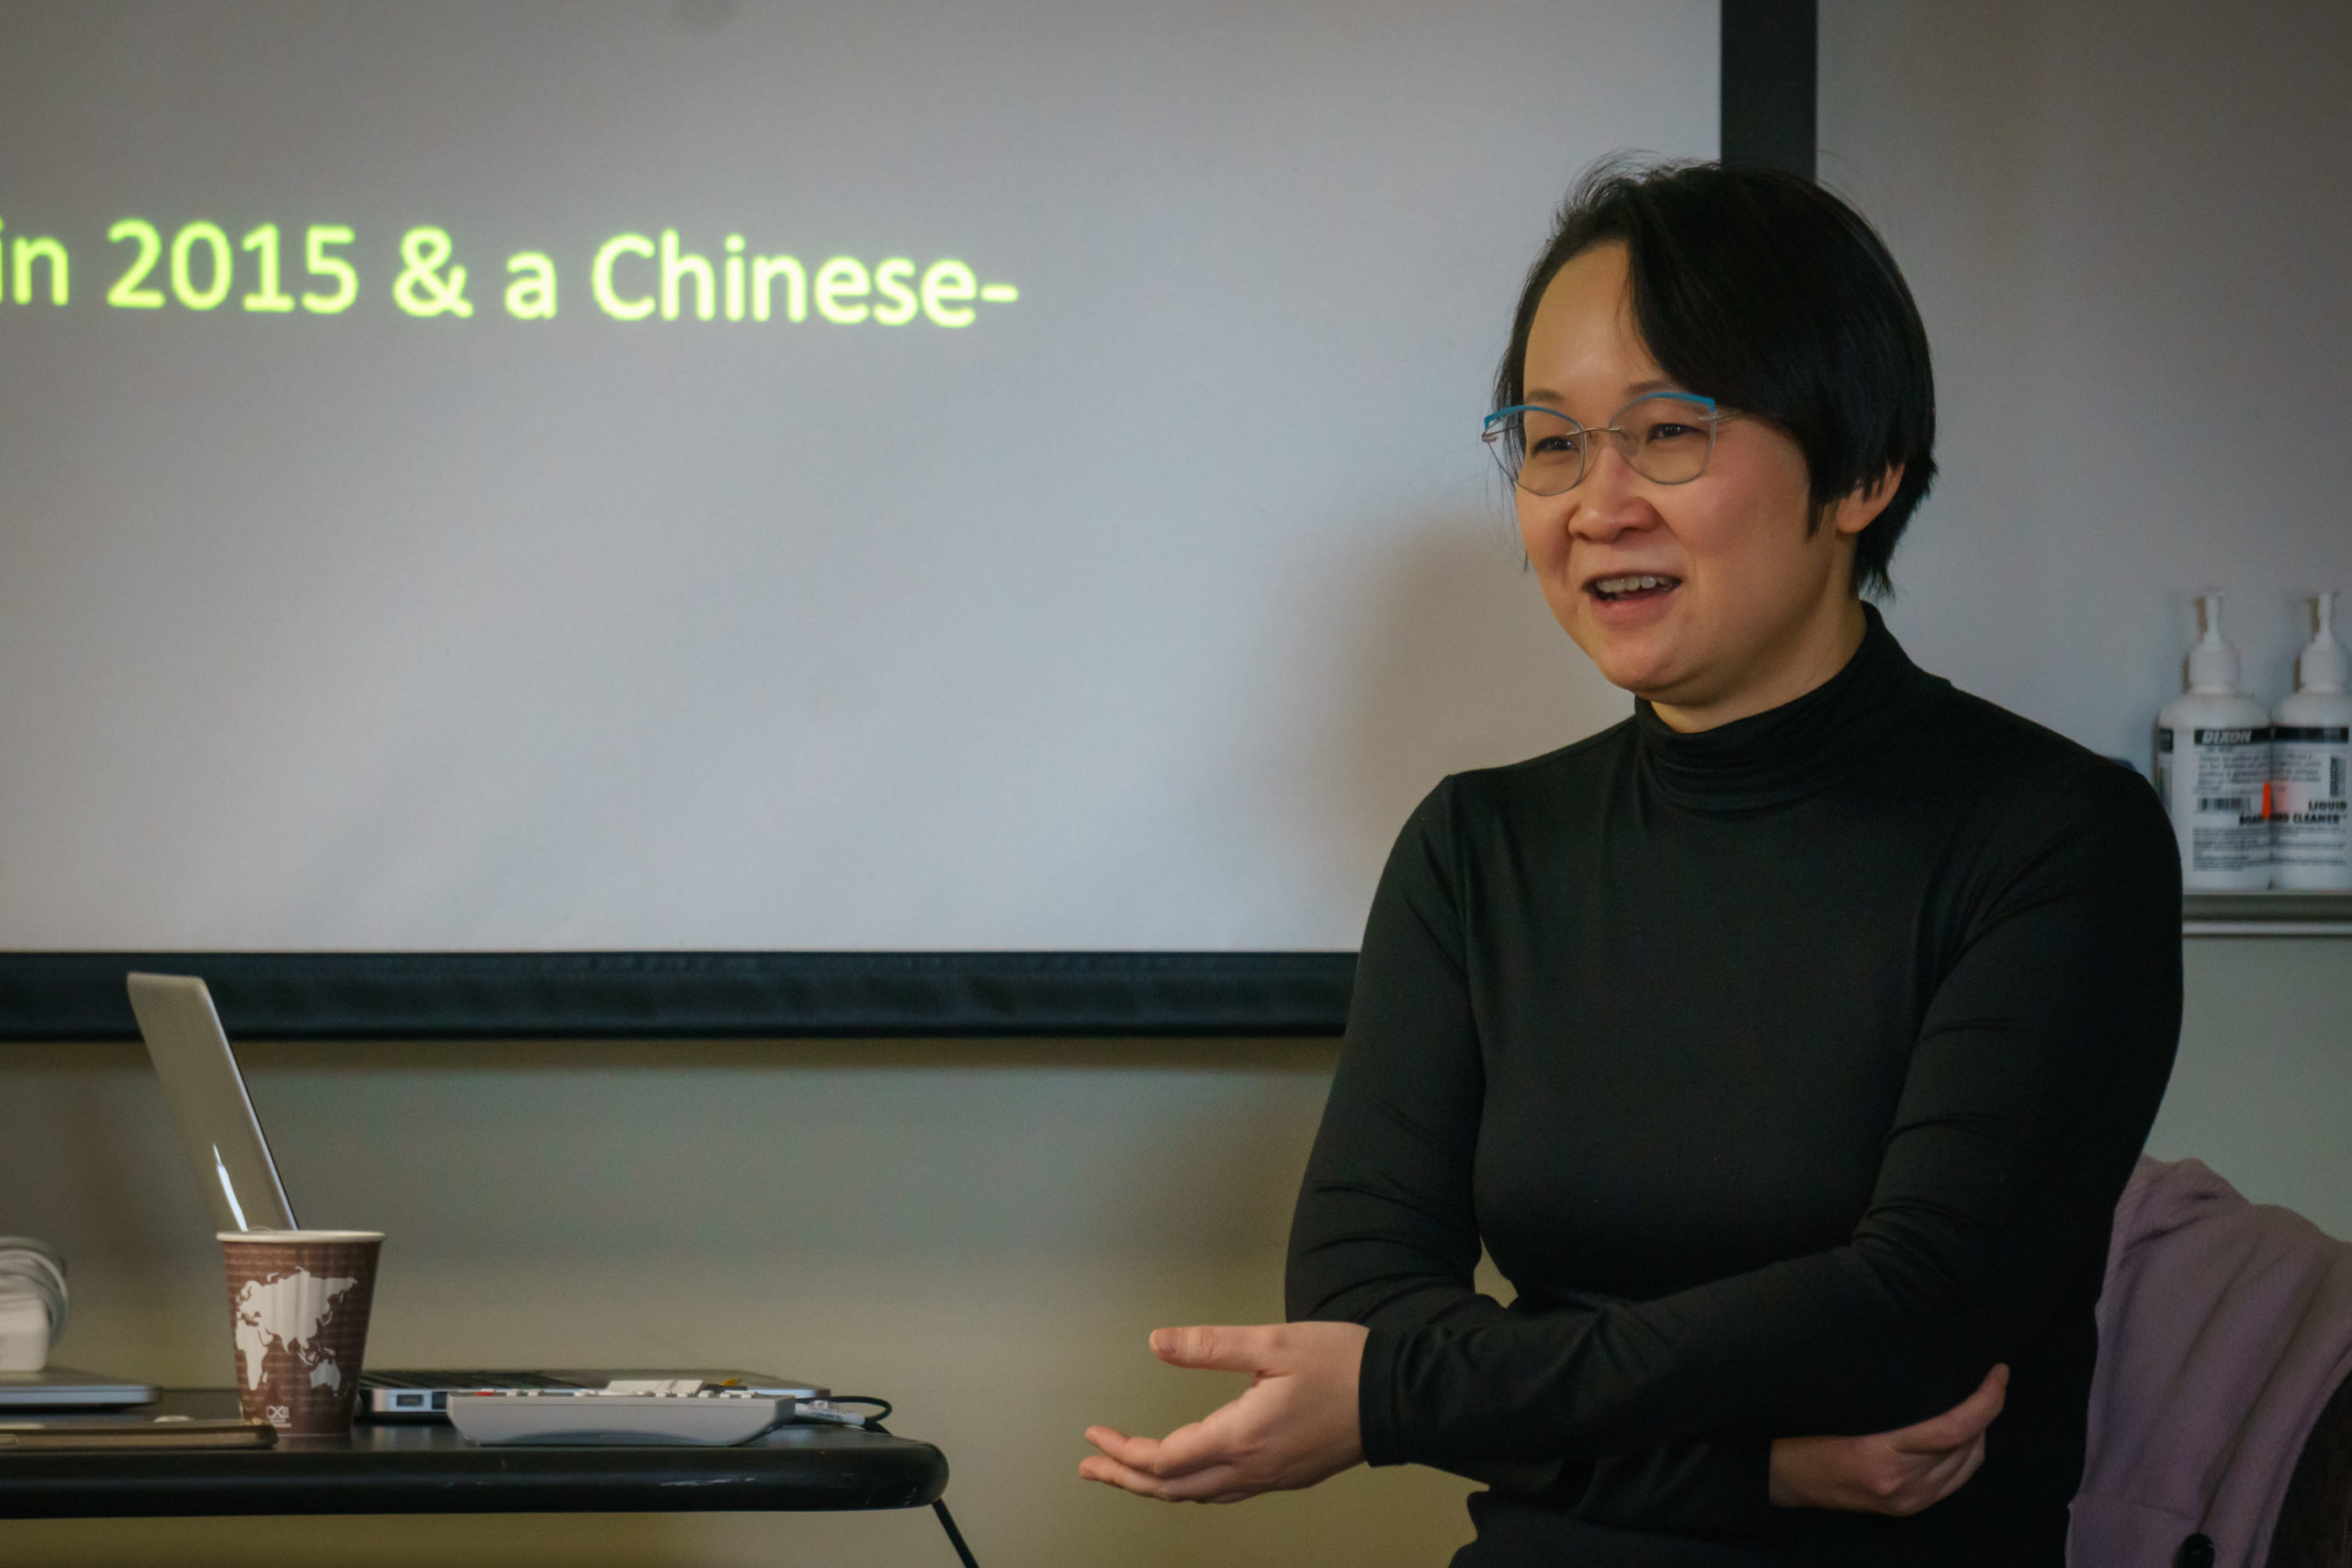 Dr. Pui-Yan Lam addresses the audience